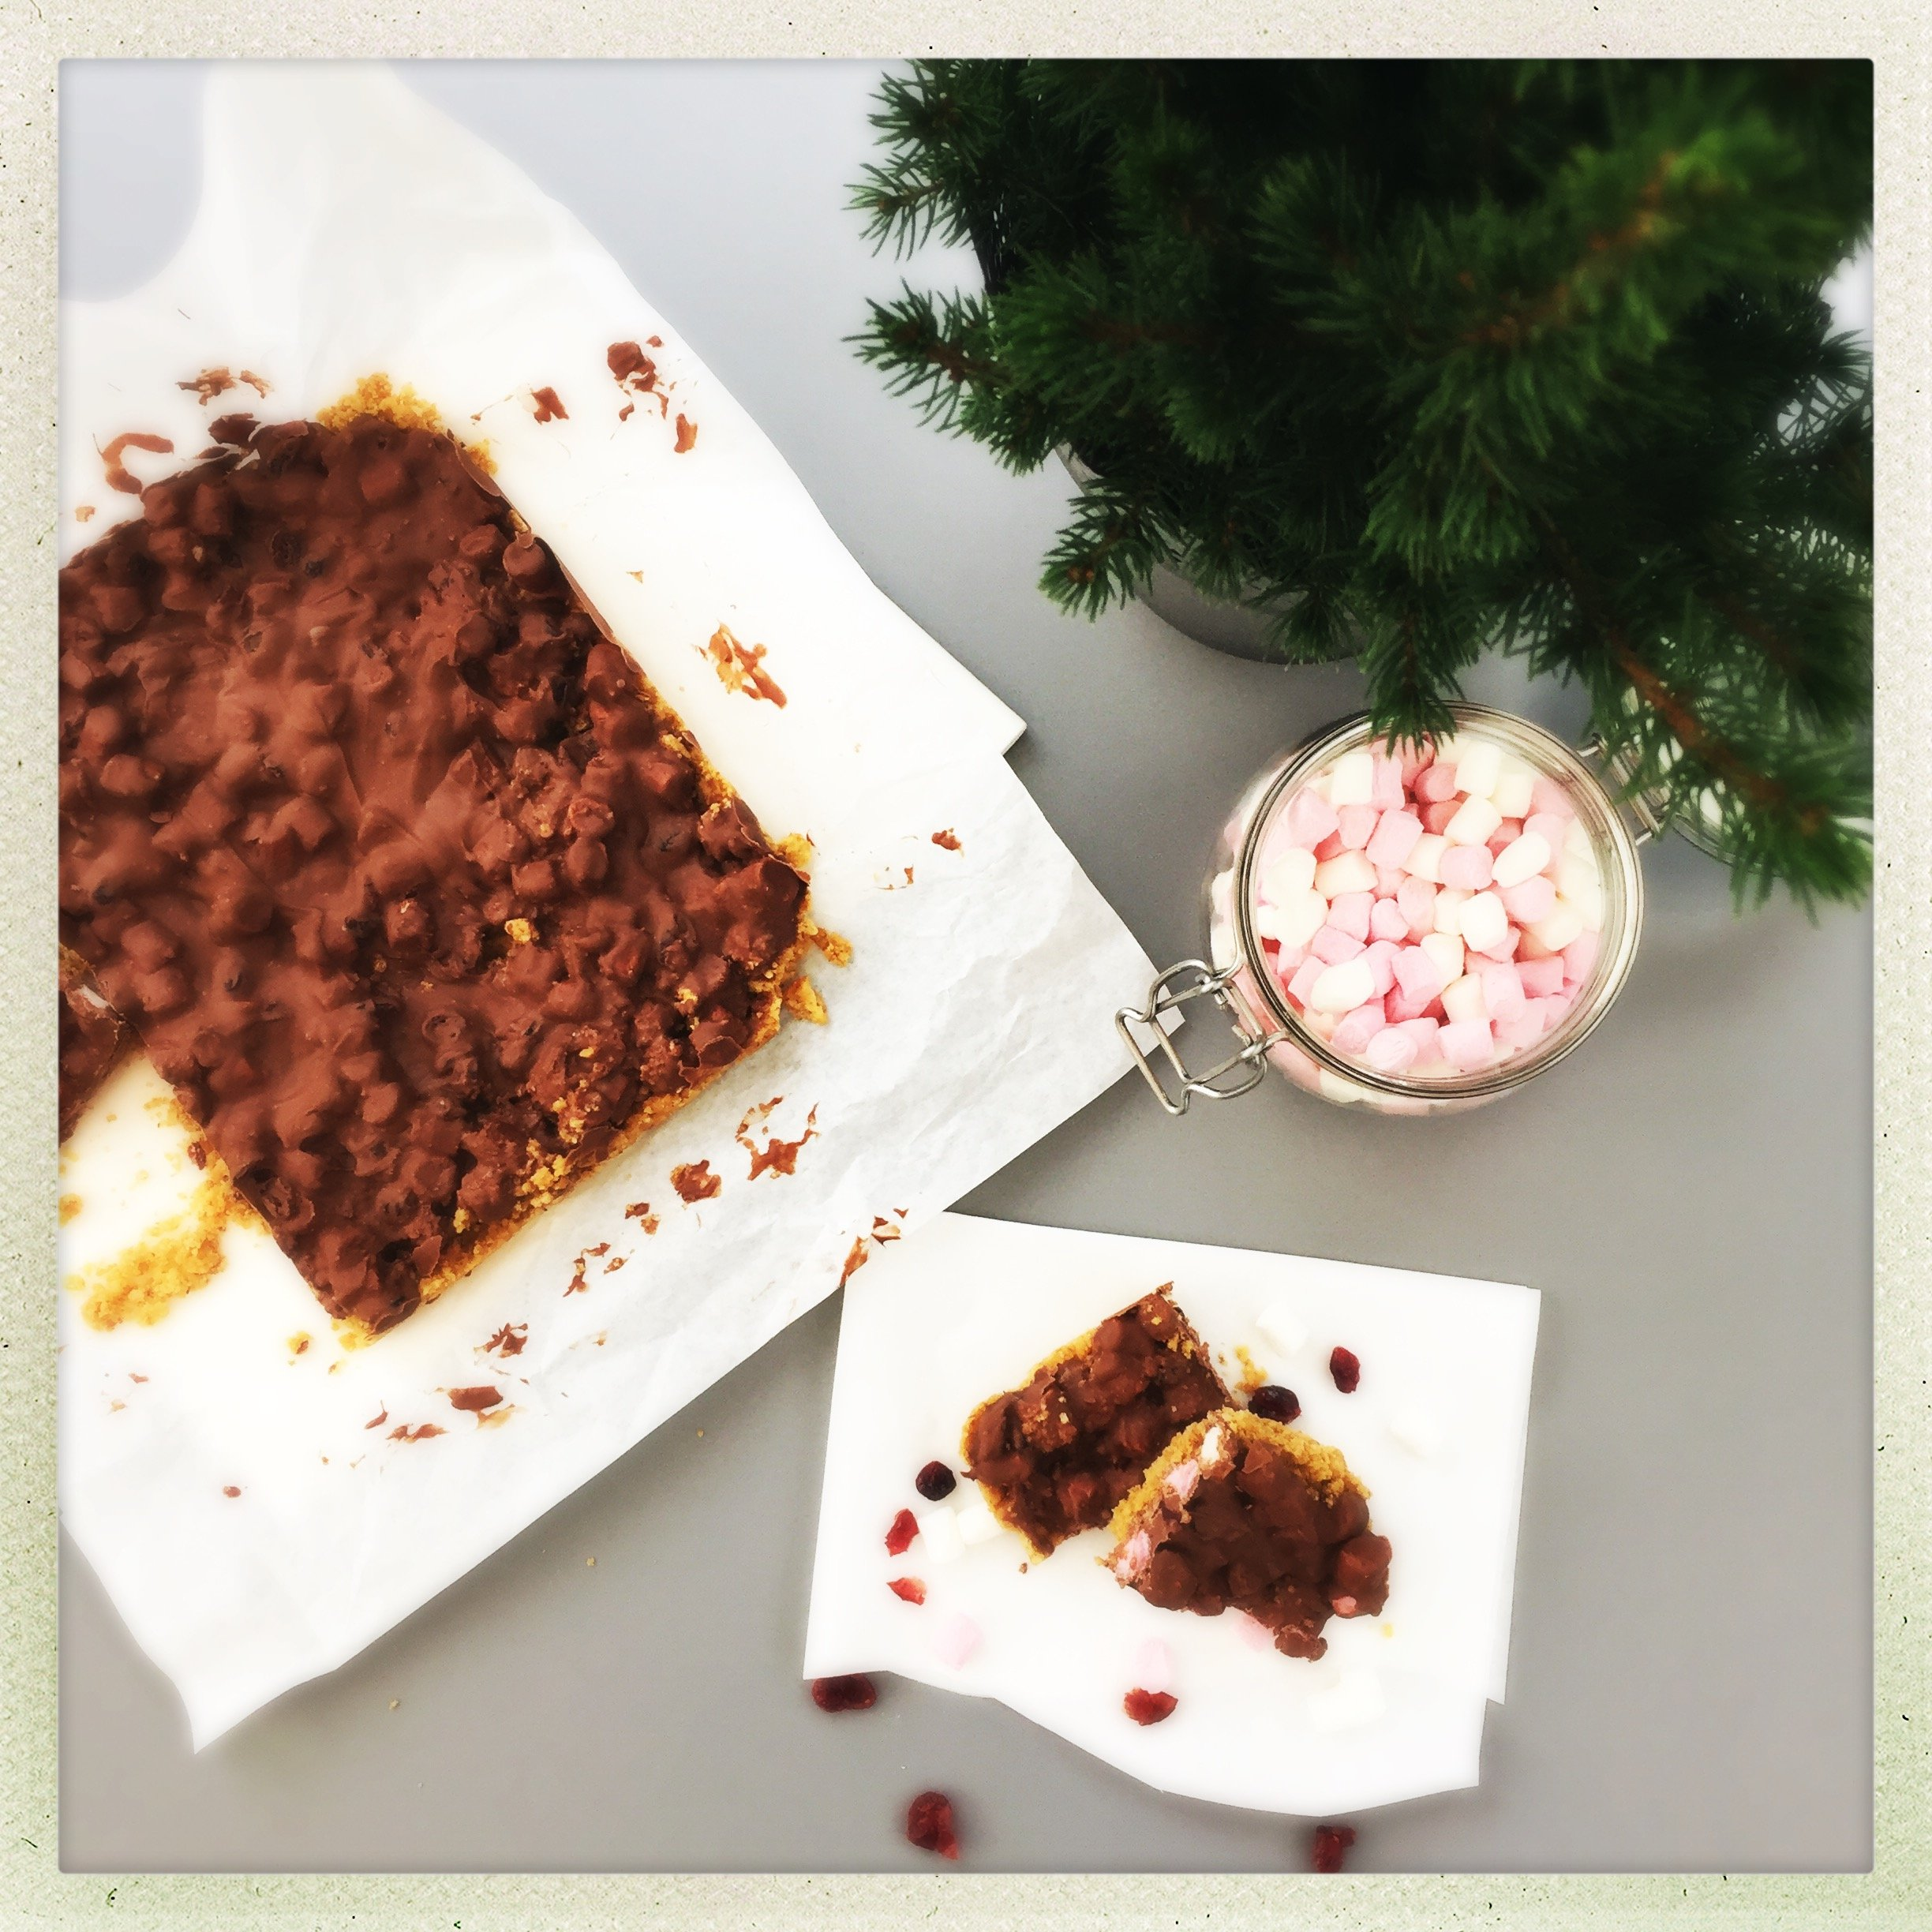 Orange and cranberry rocky roads